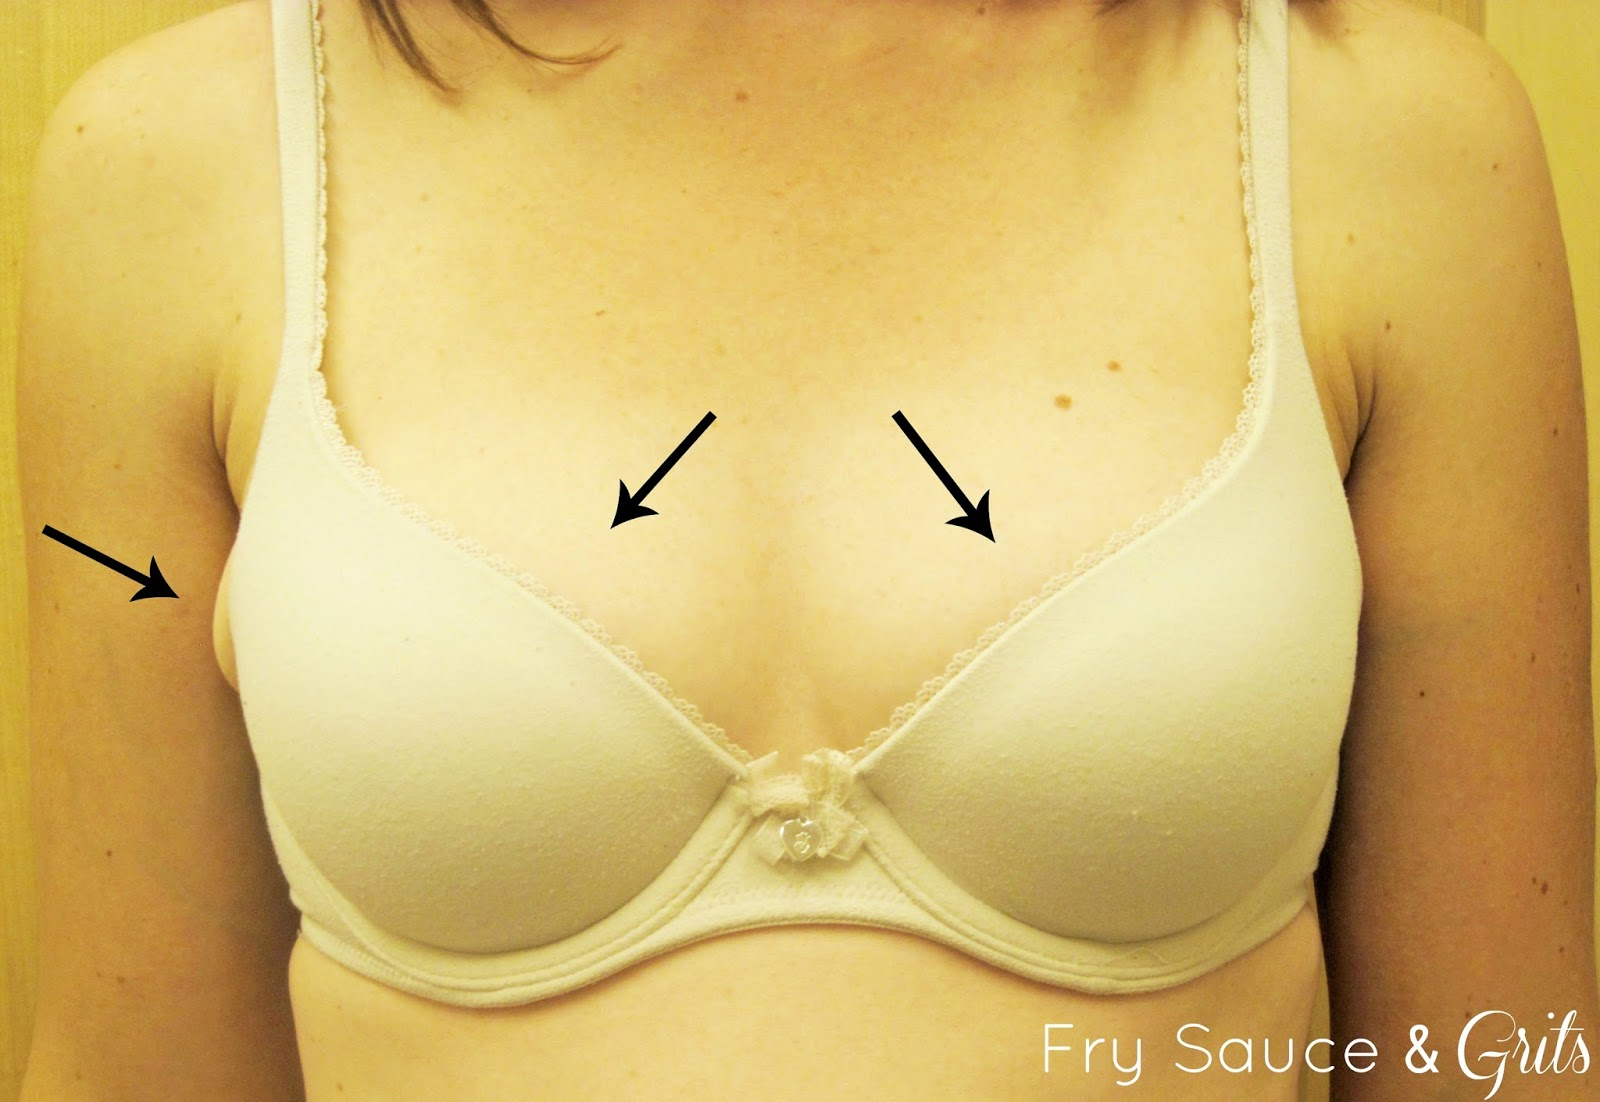 Incorrect Fitting Bra from FrySauceandGrits.com